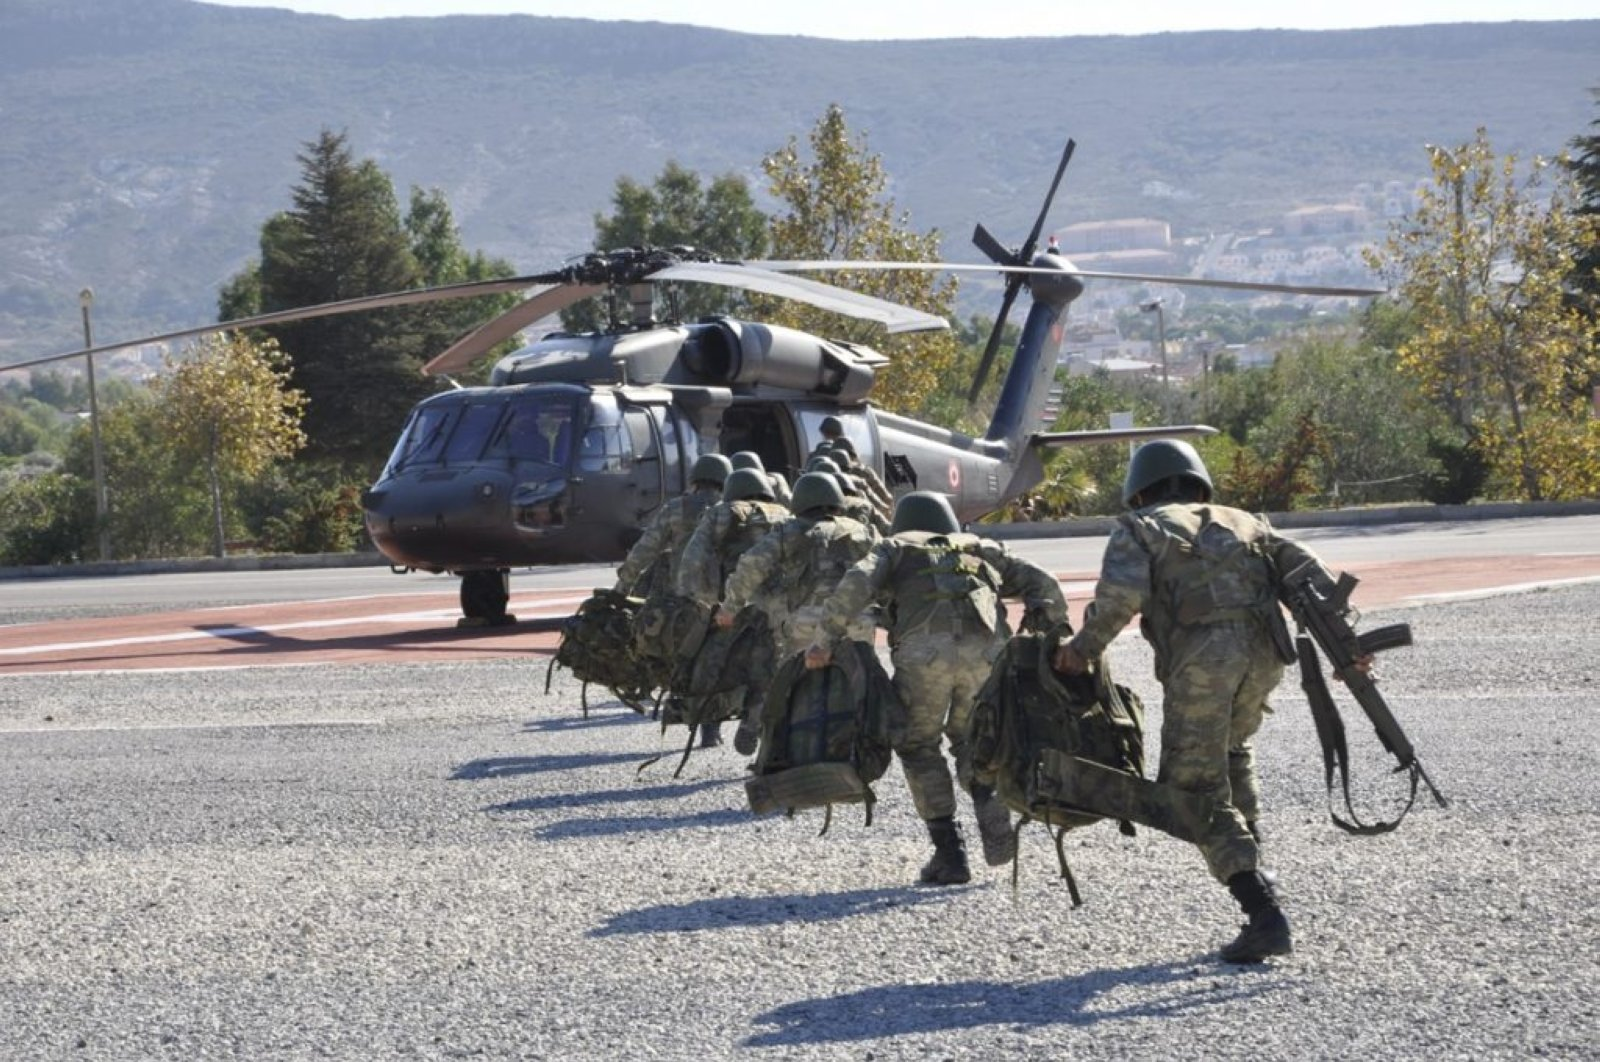 Gendarmerie special forces are seen walking toward a military helicopter as the Interior Ministry launches Operation Lightning-10 against terrorists in eastern Van province, Turkey, Sept. 8, 2020. (AA Photo)